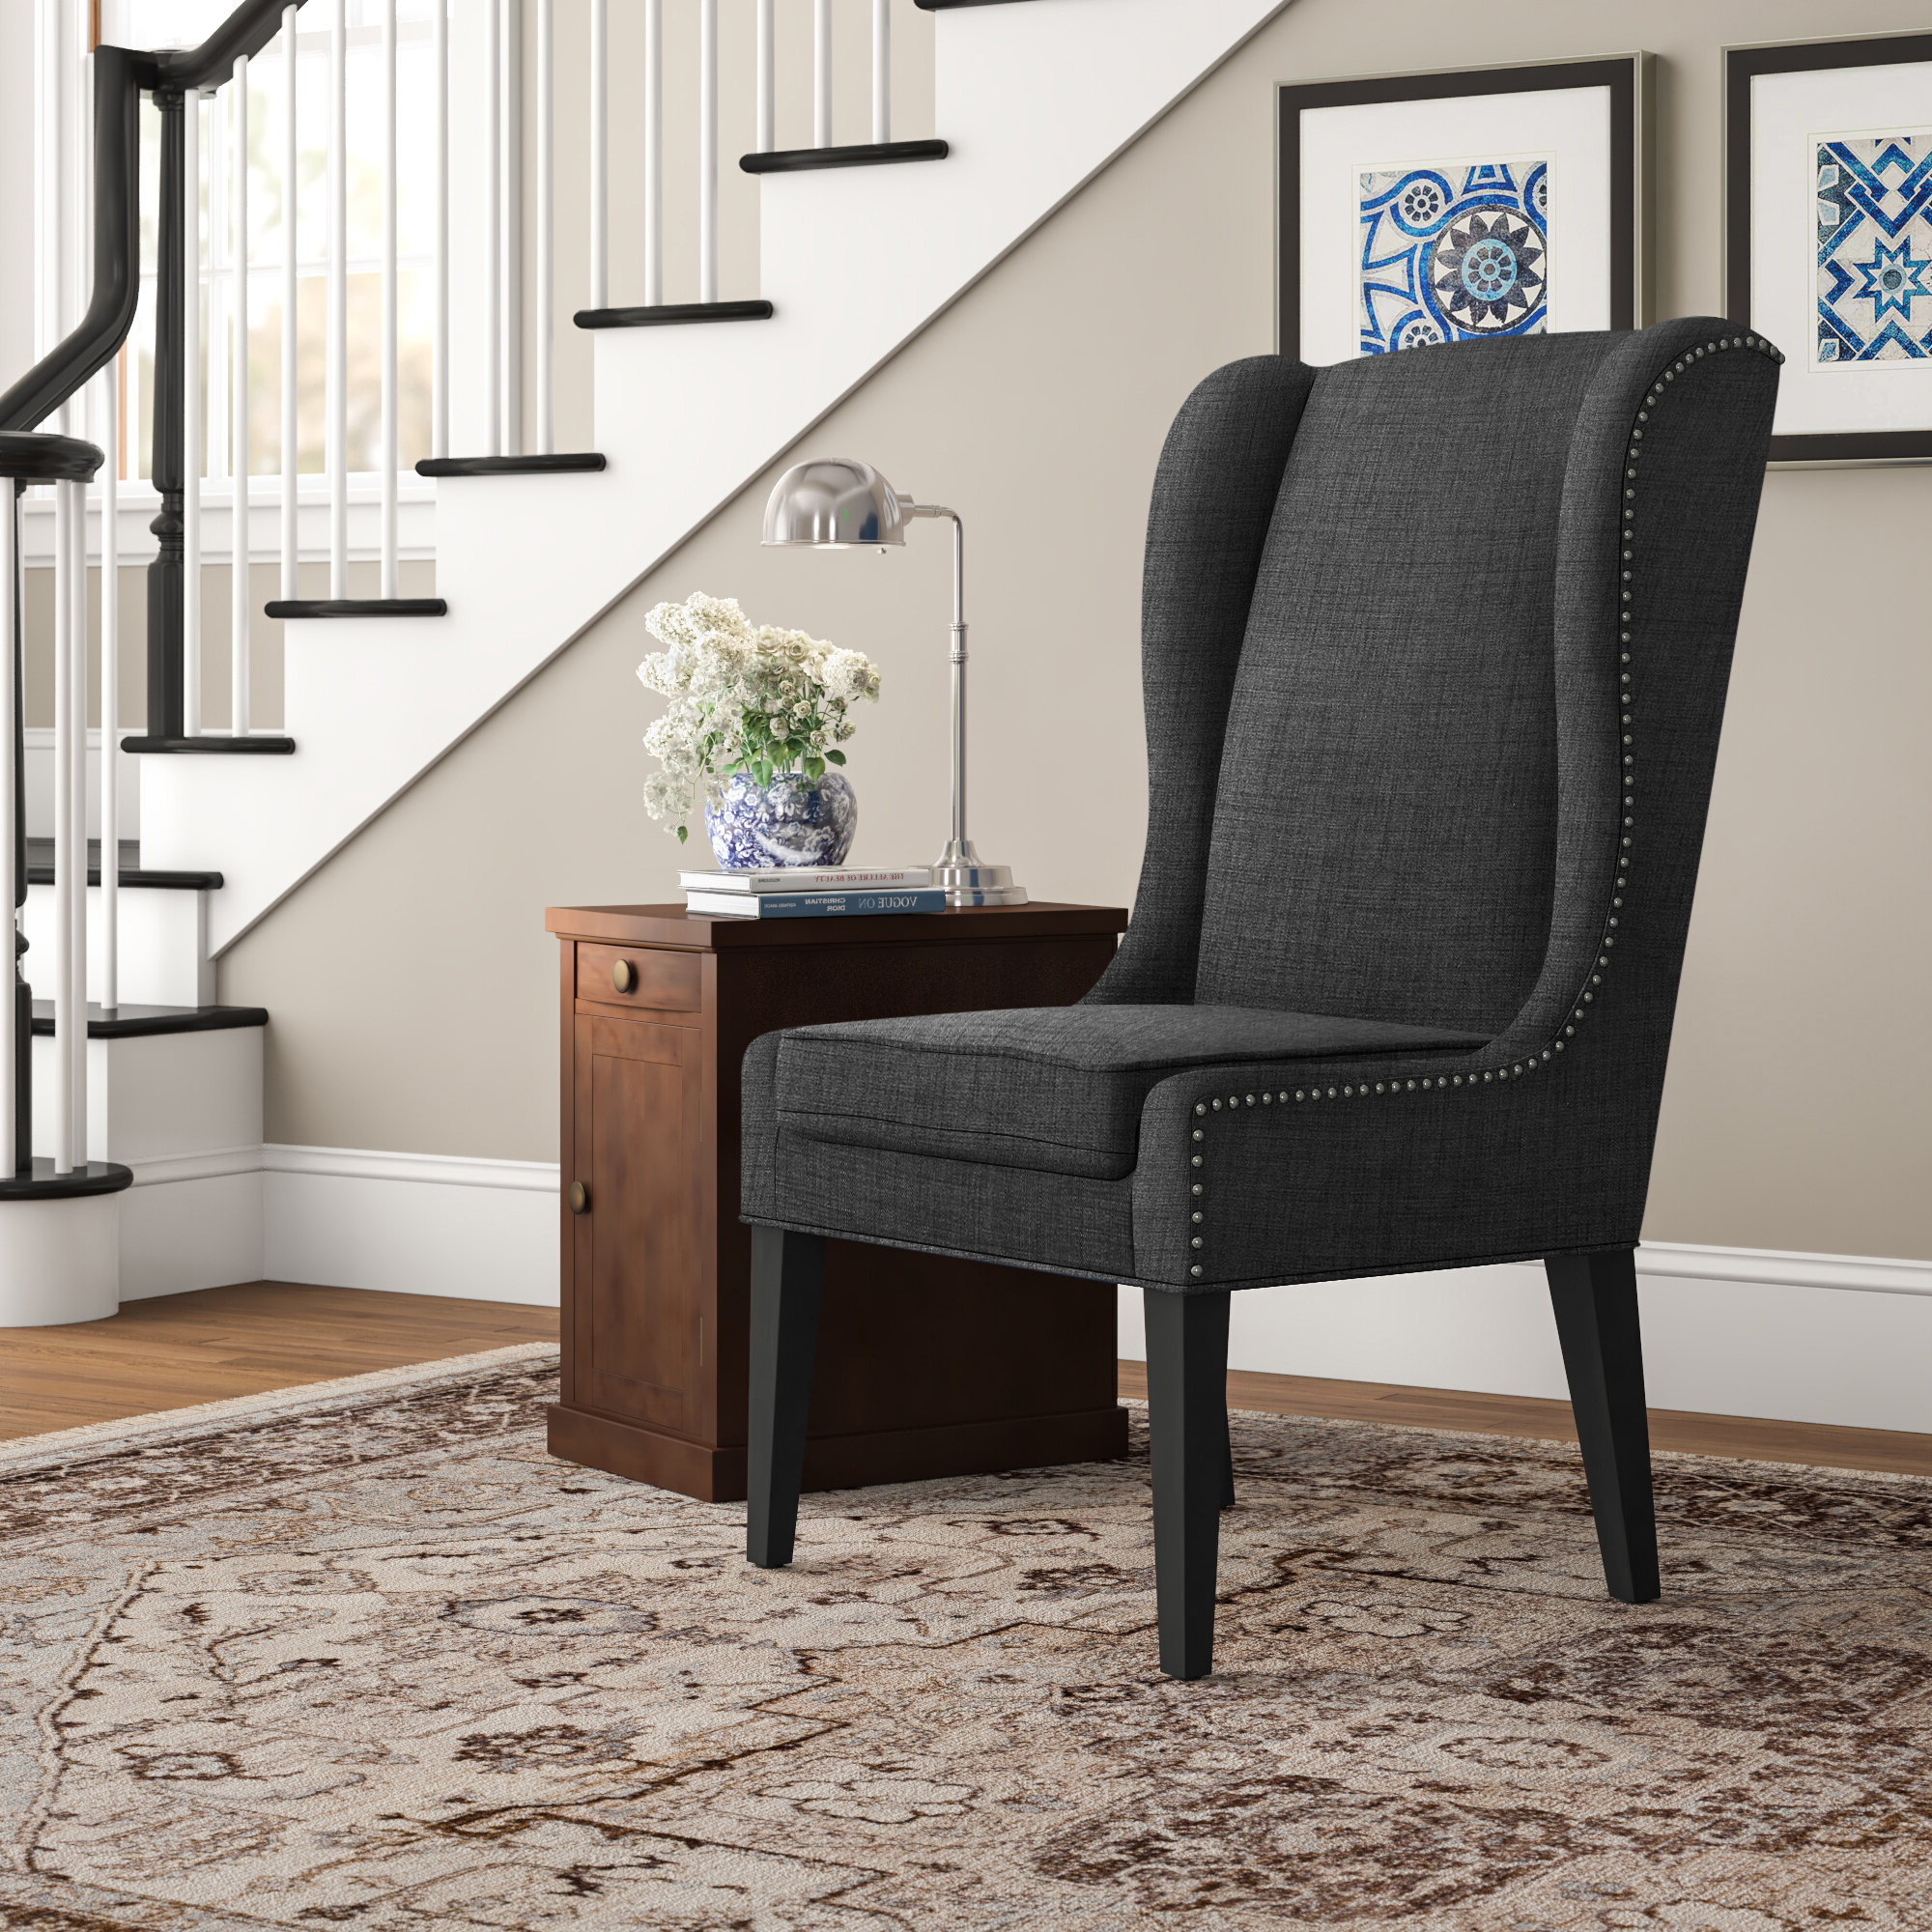 Wayfair Intended For Andover Wingback Chairs (View 3 of 20)